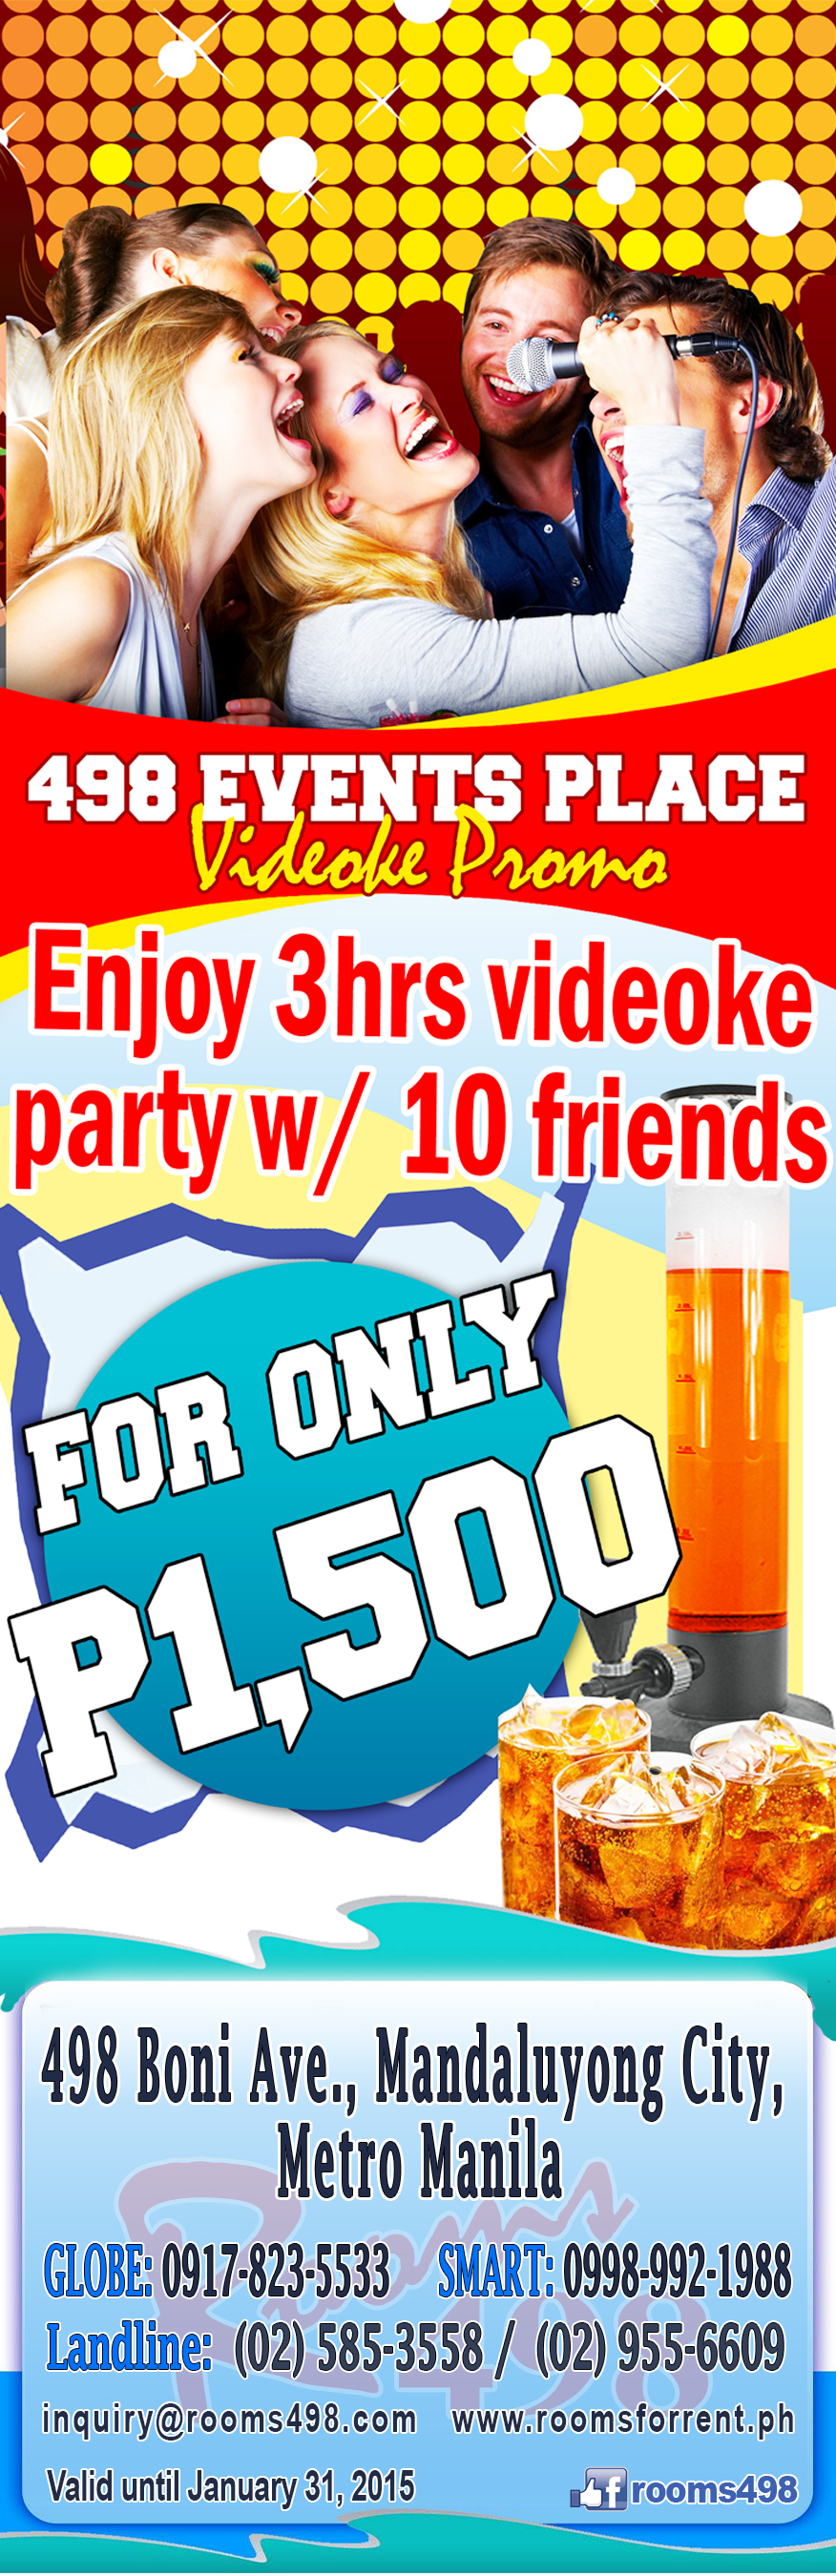 VIDEOKE KTV PARTY KARAOKE METRO MANILA OVERNIGHT PARTY